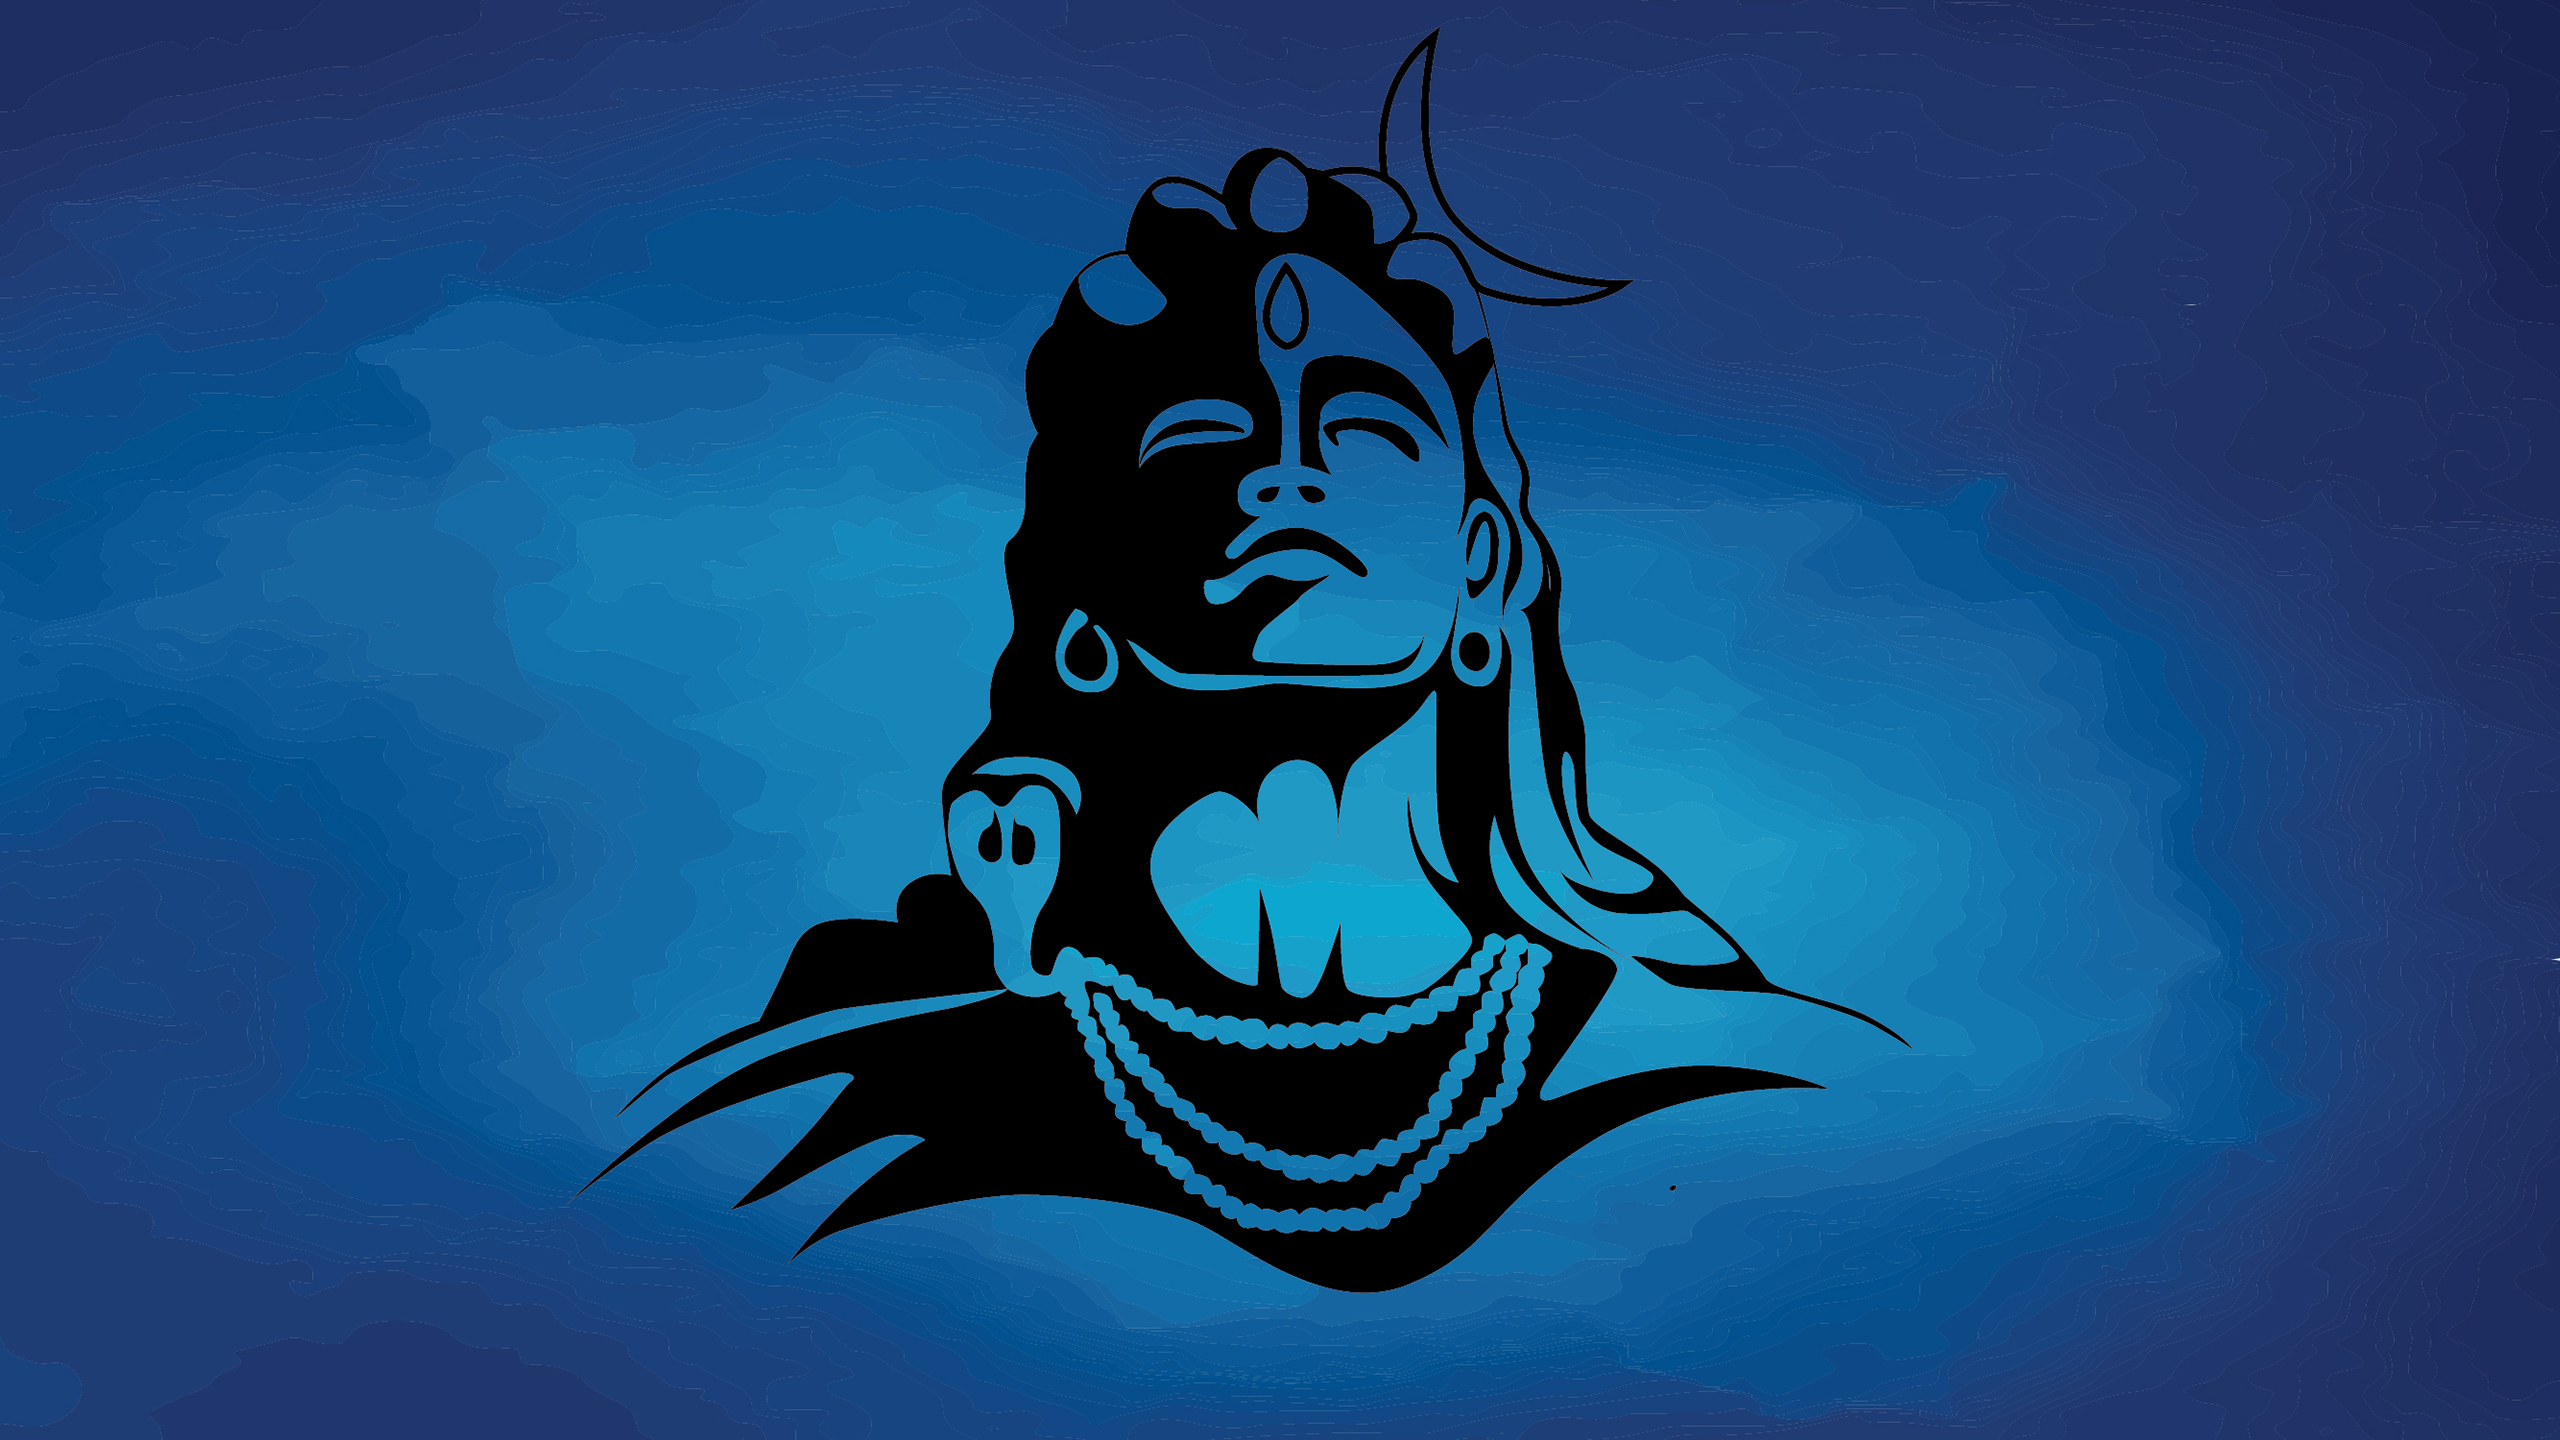 Lord Shiva 4K Wallpapers - Wallpaper Cave